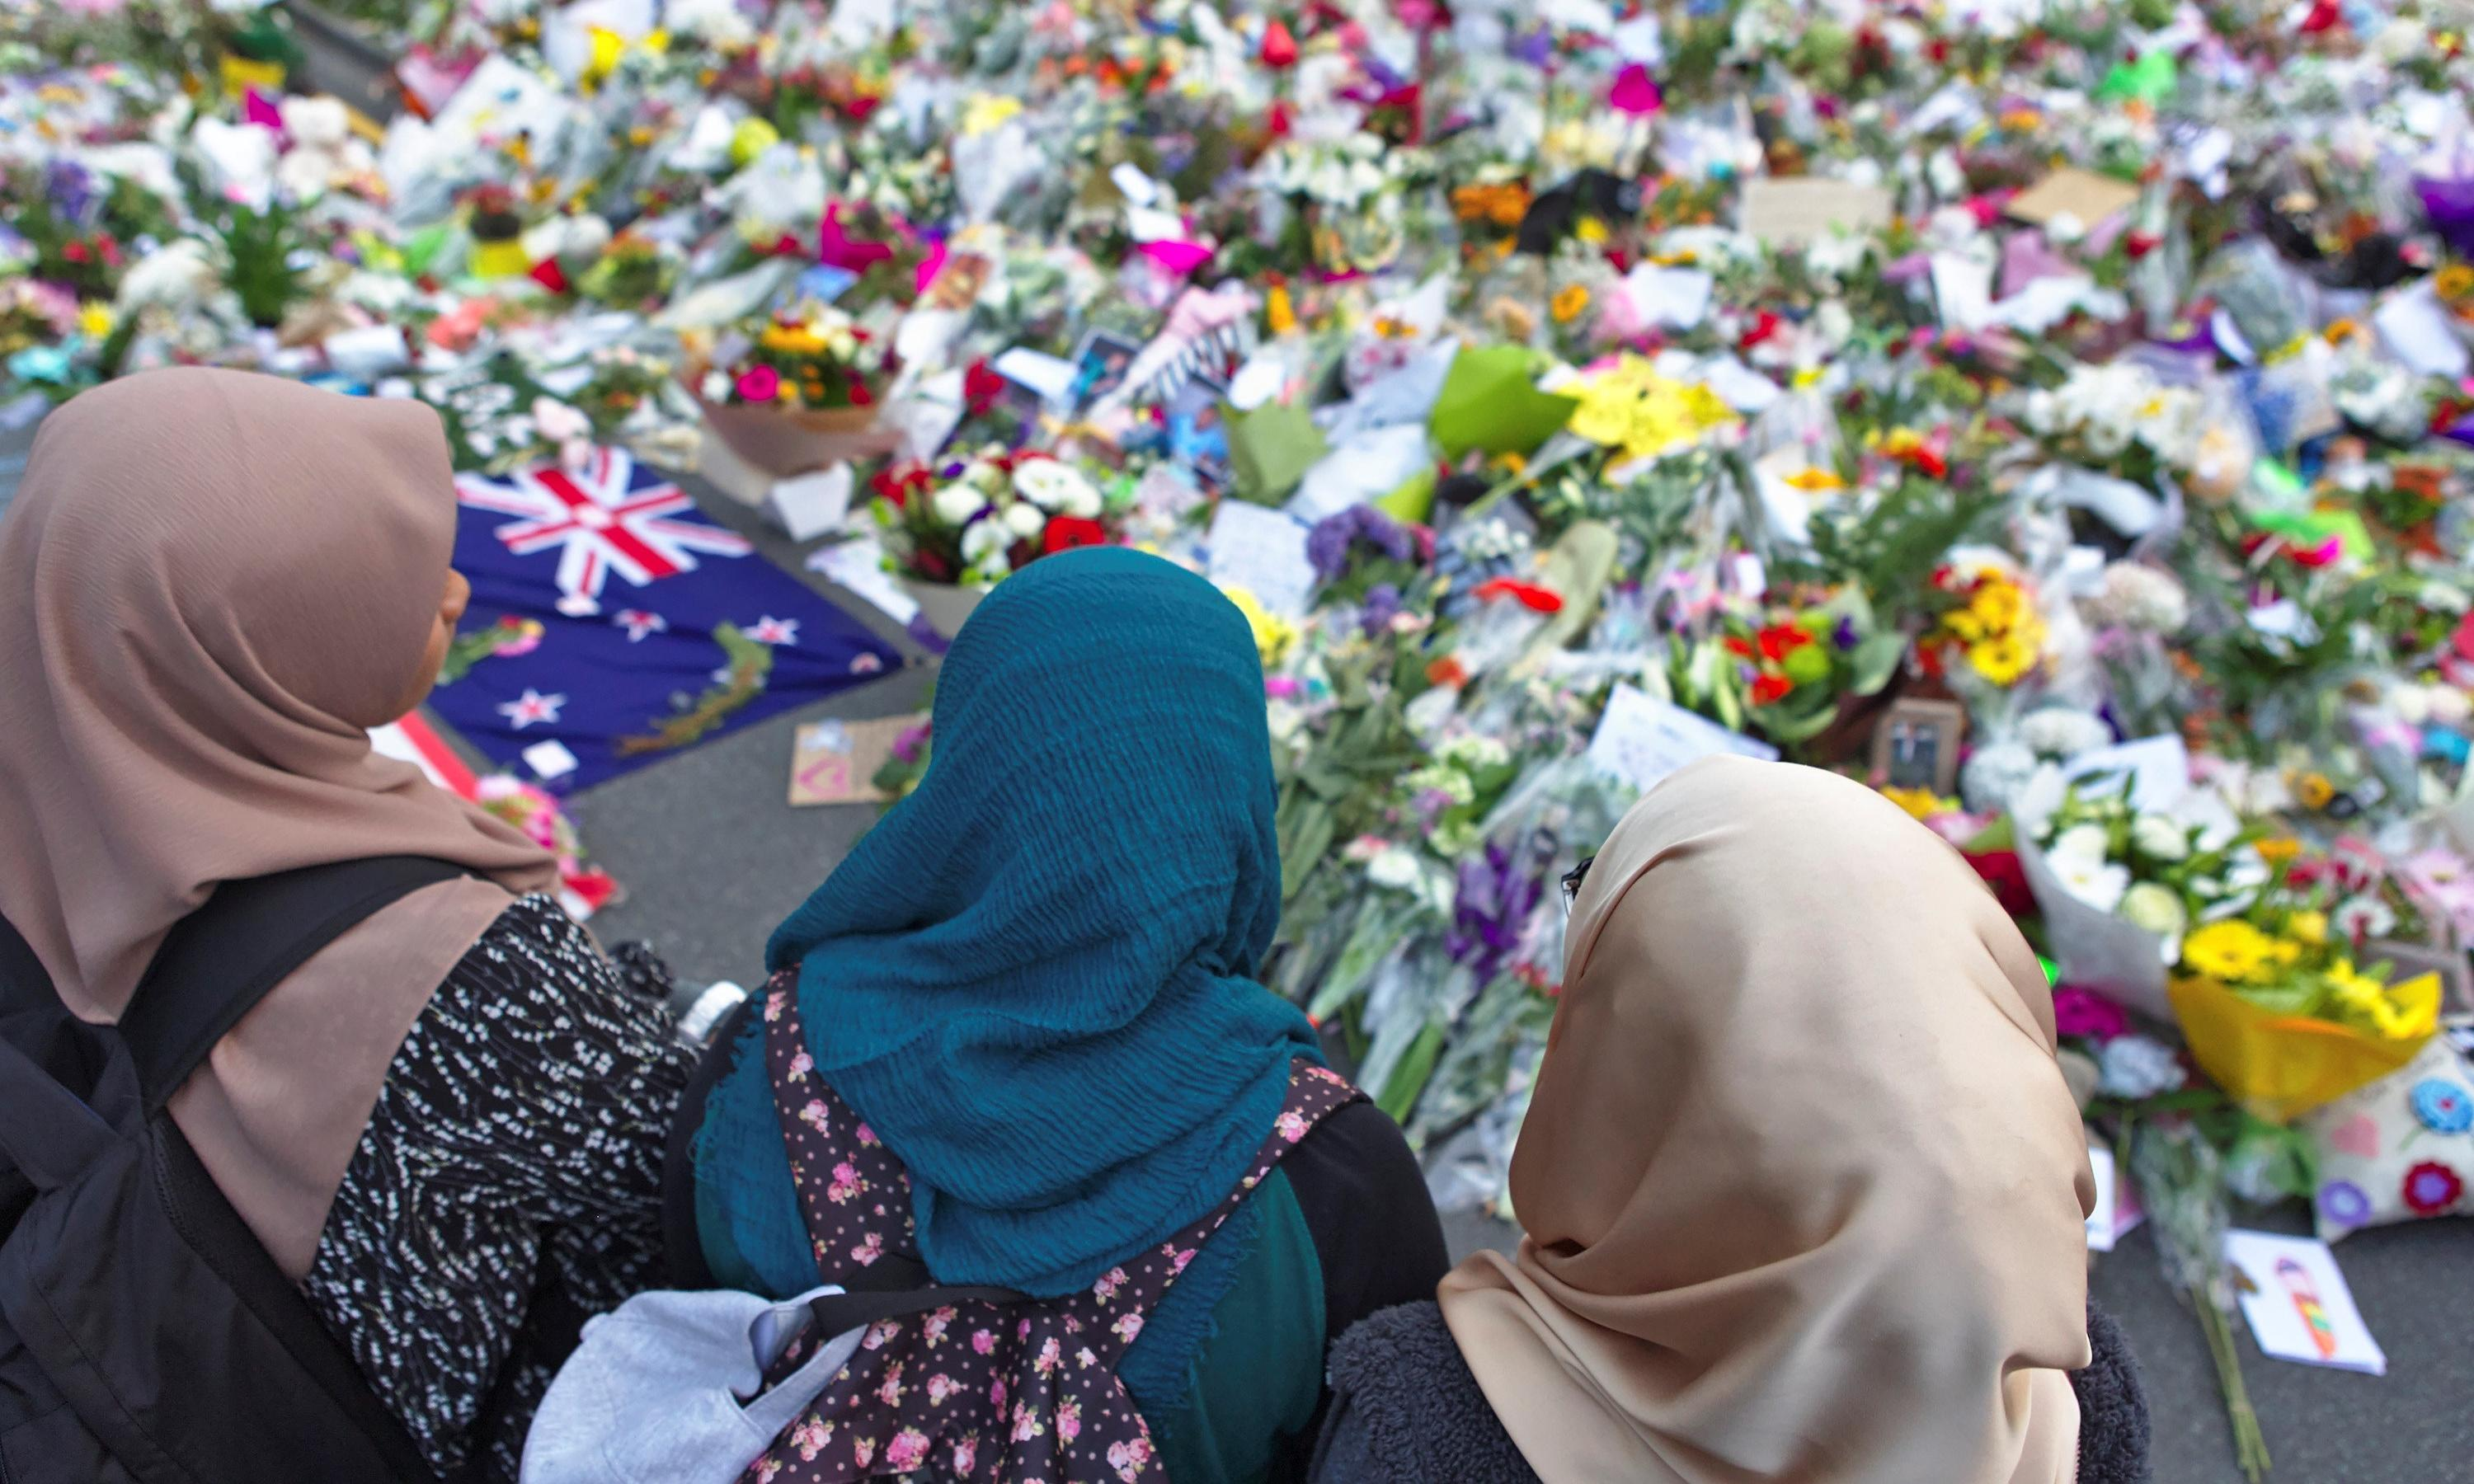 Naming the Christchurch suspect is a choice. The media must make it carefully